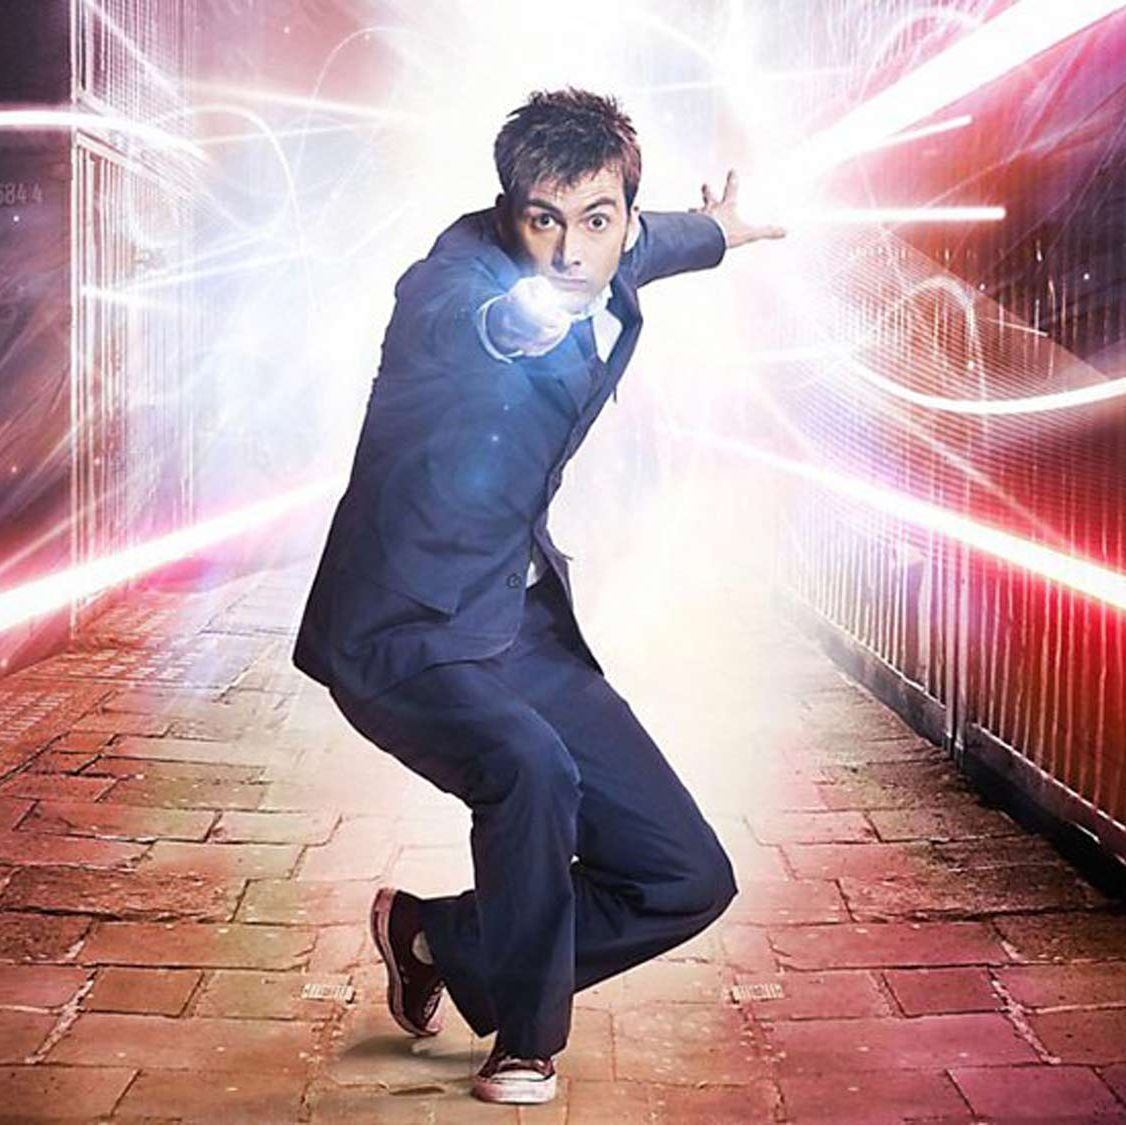 David Tennant's iconic Doctor Who trainers could be yours to own